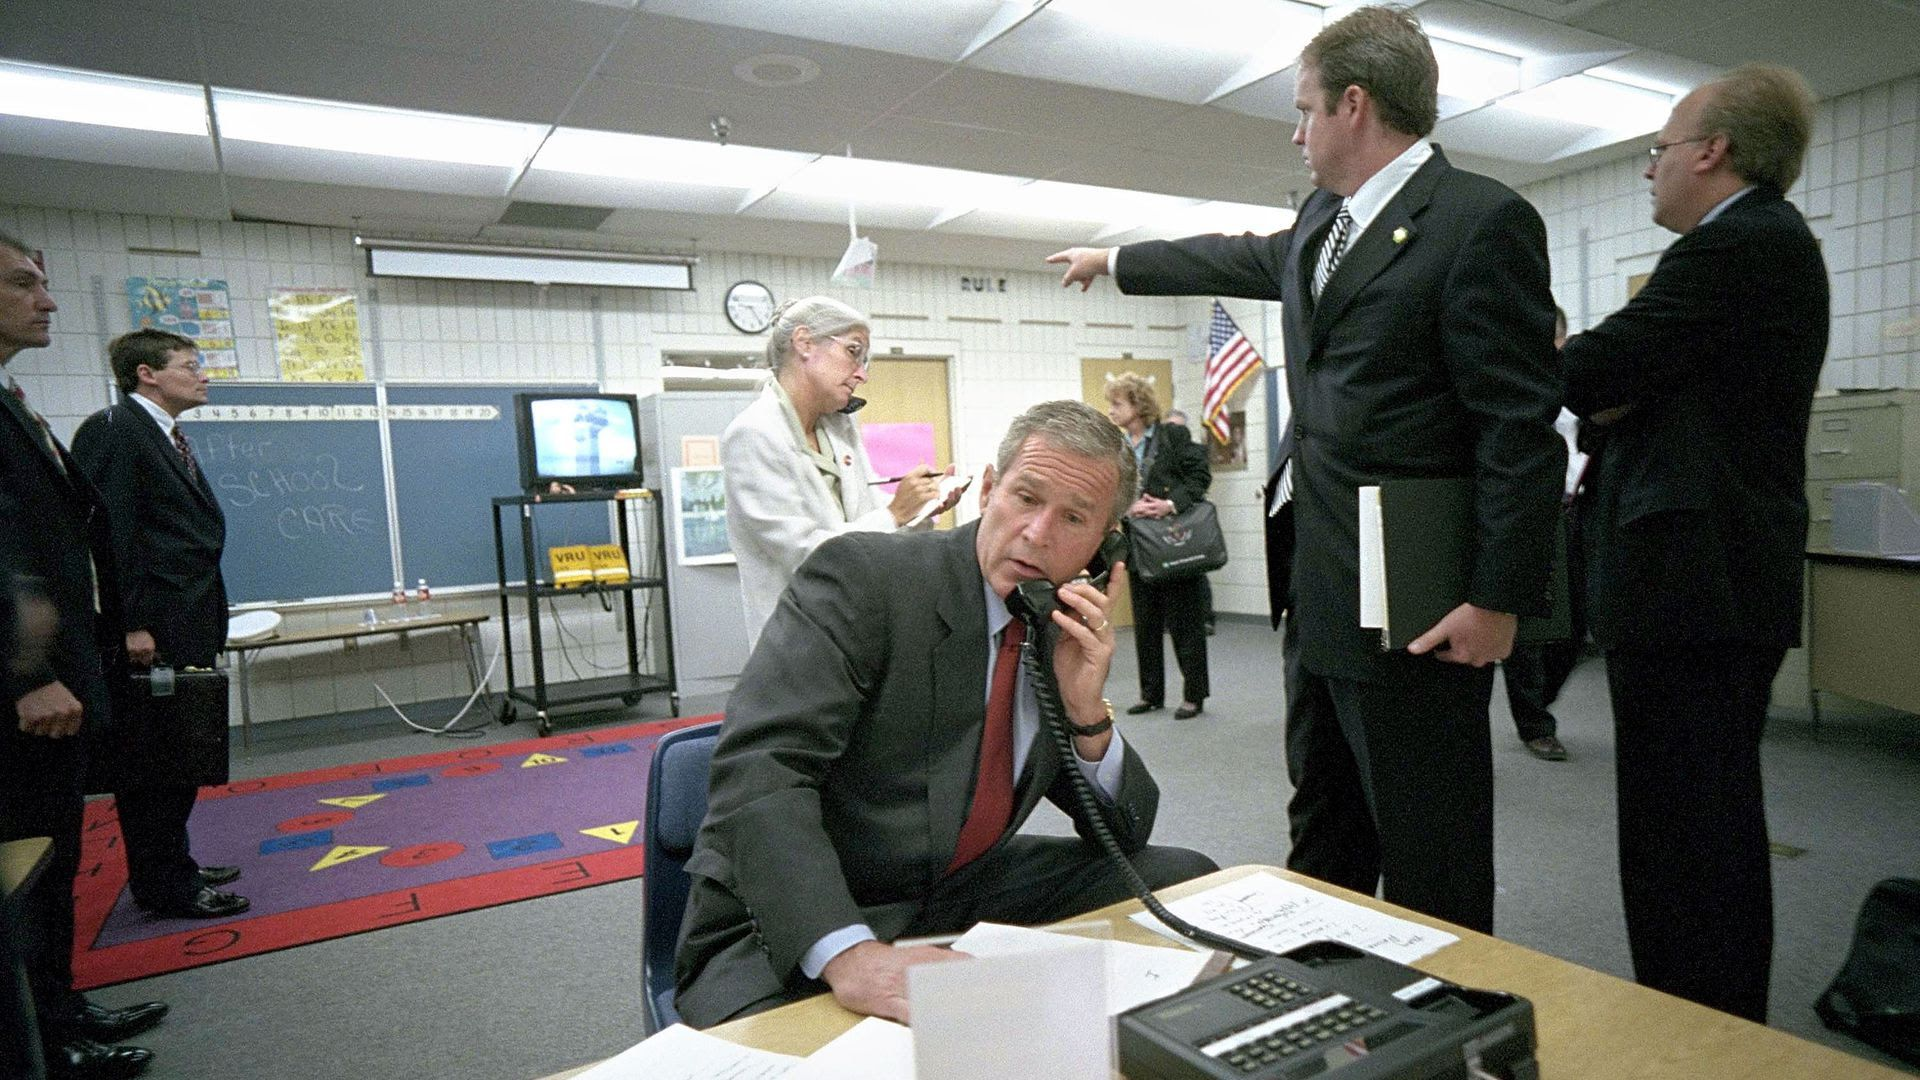 Former President George W. Bush makes a call from Emma Booker Elementary School in Sarasota on September 11, 2001.